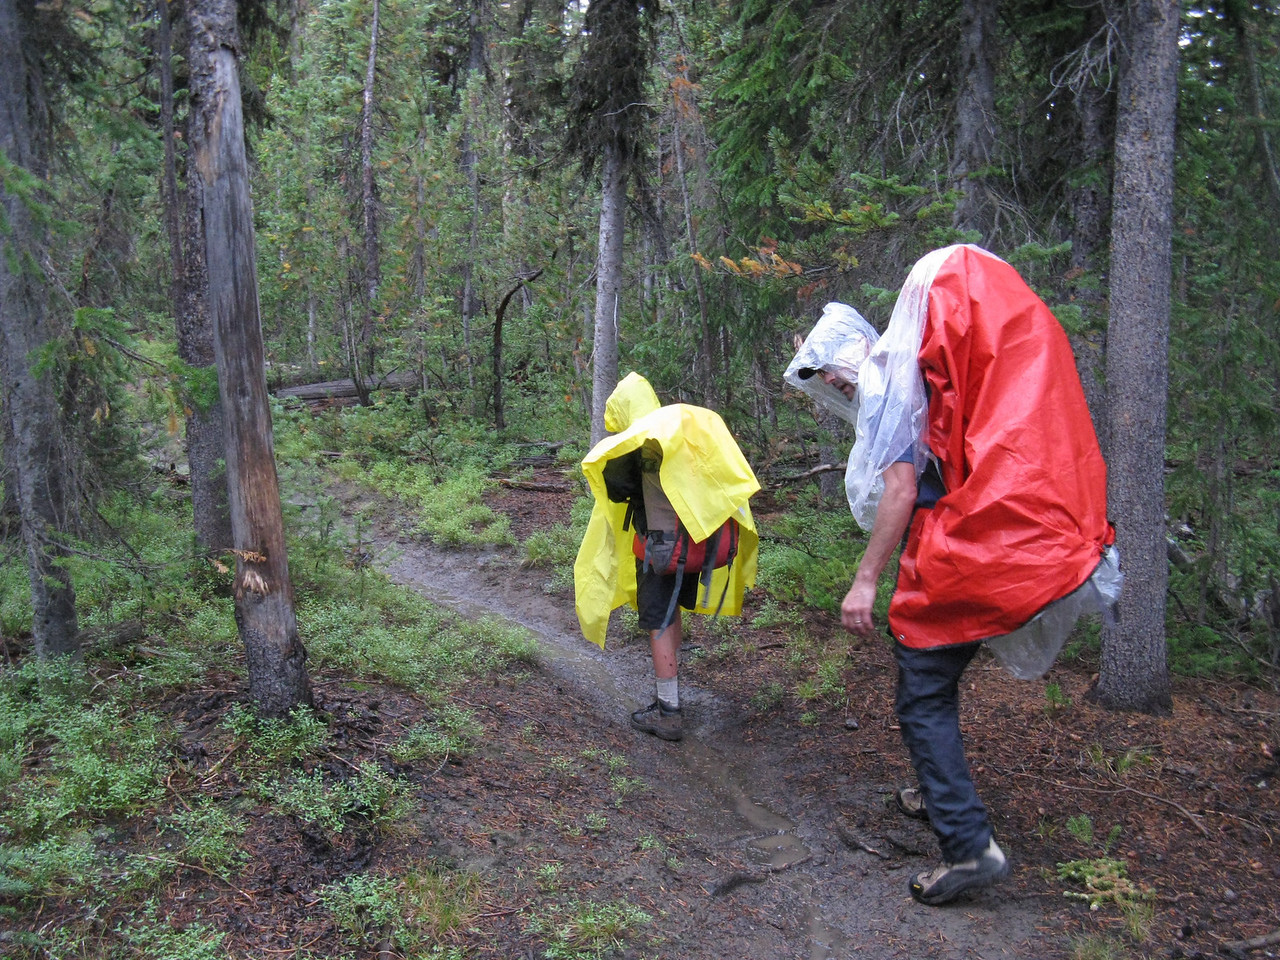 Well - the weather has headed south. .. Kevin has rigged a rain cover for his pack.